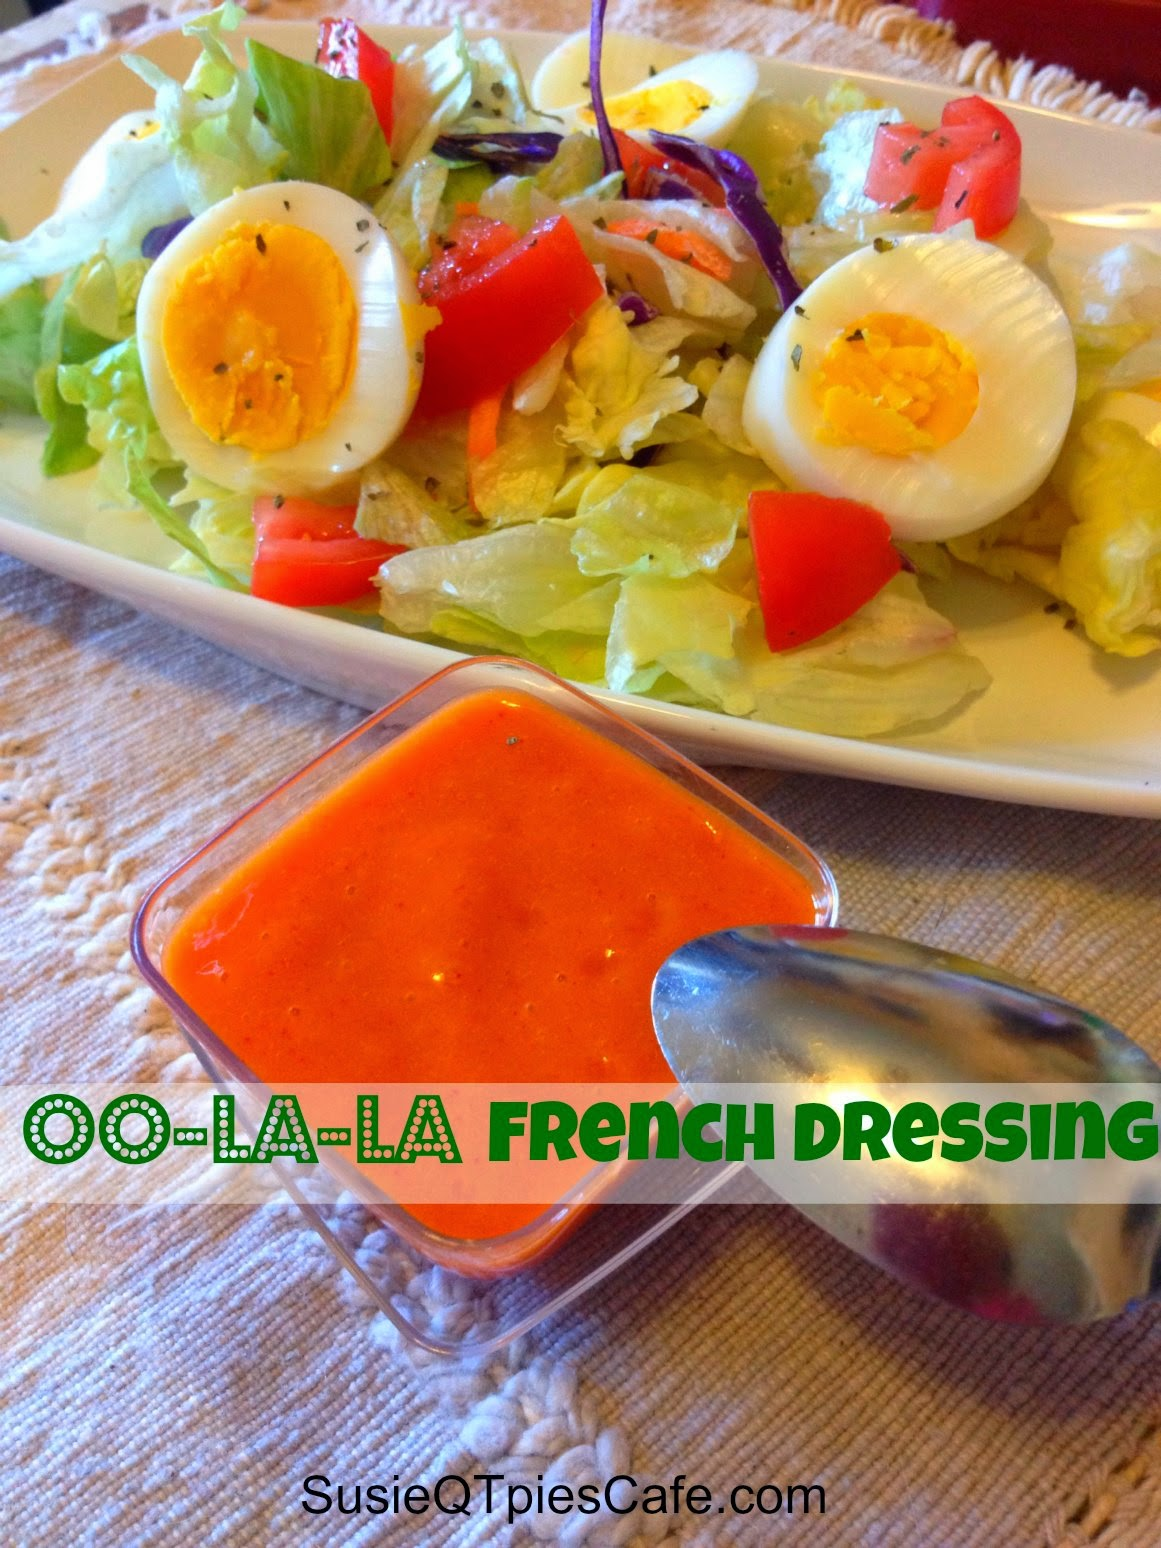 French homemade salad dressings